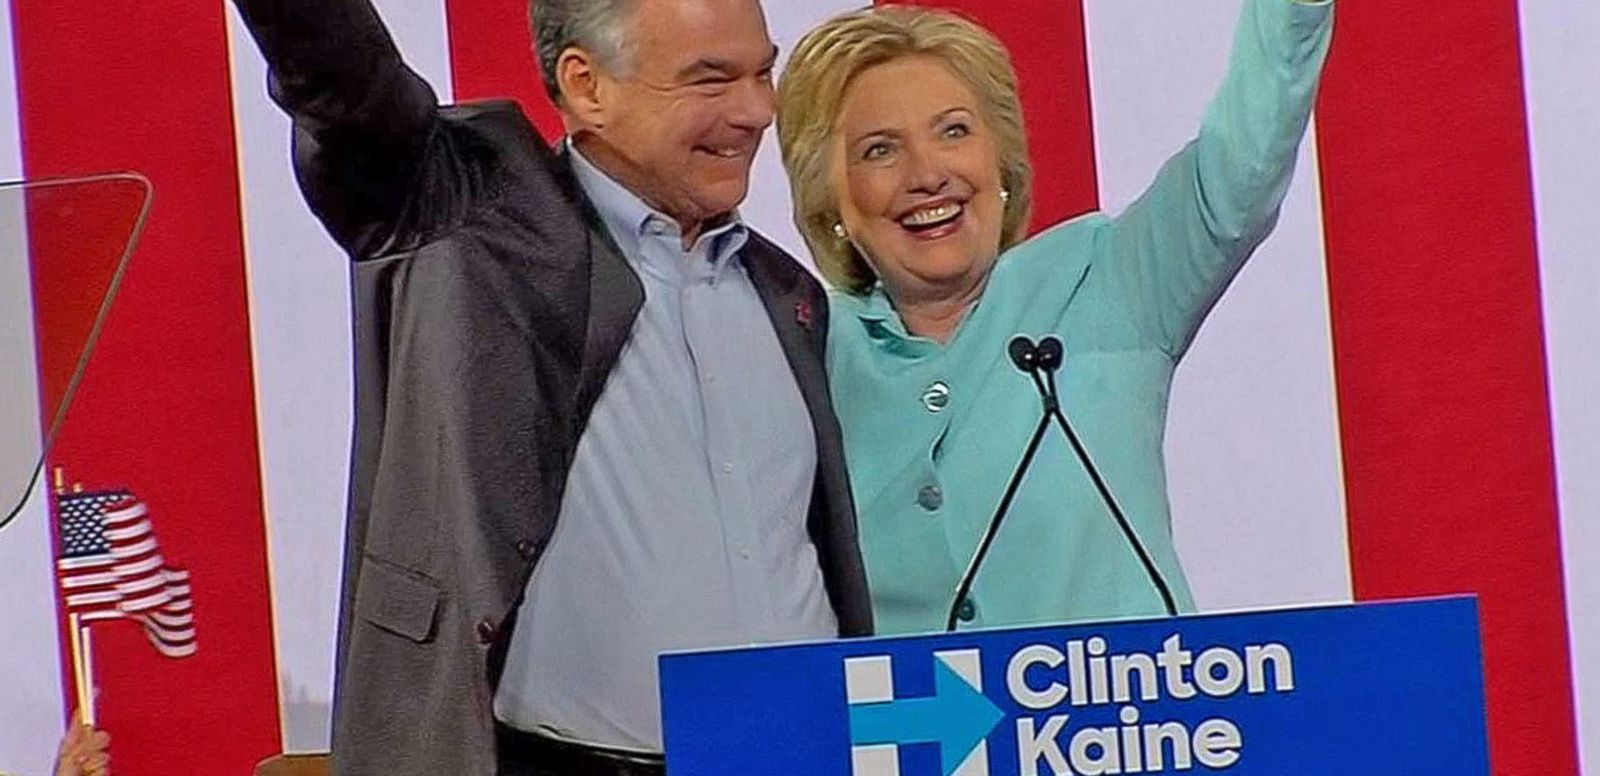 VIDEO: Hillary Clinton Officially Introduces Tim Kaine During Campaign Rally